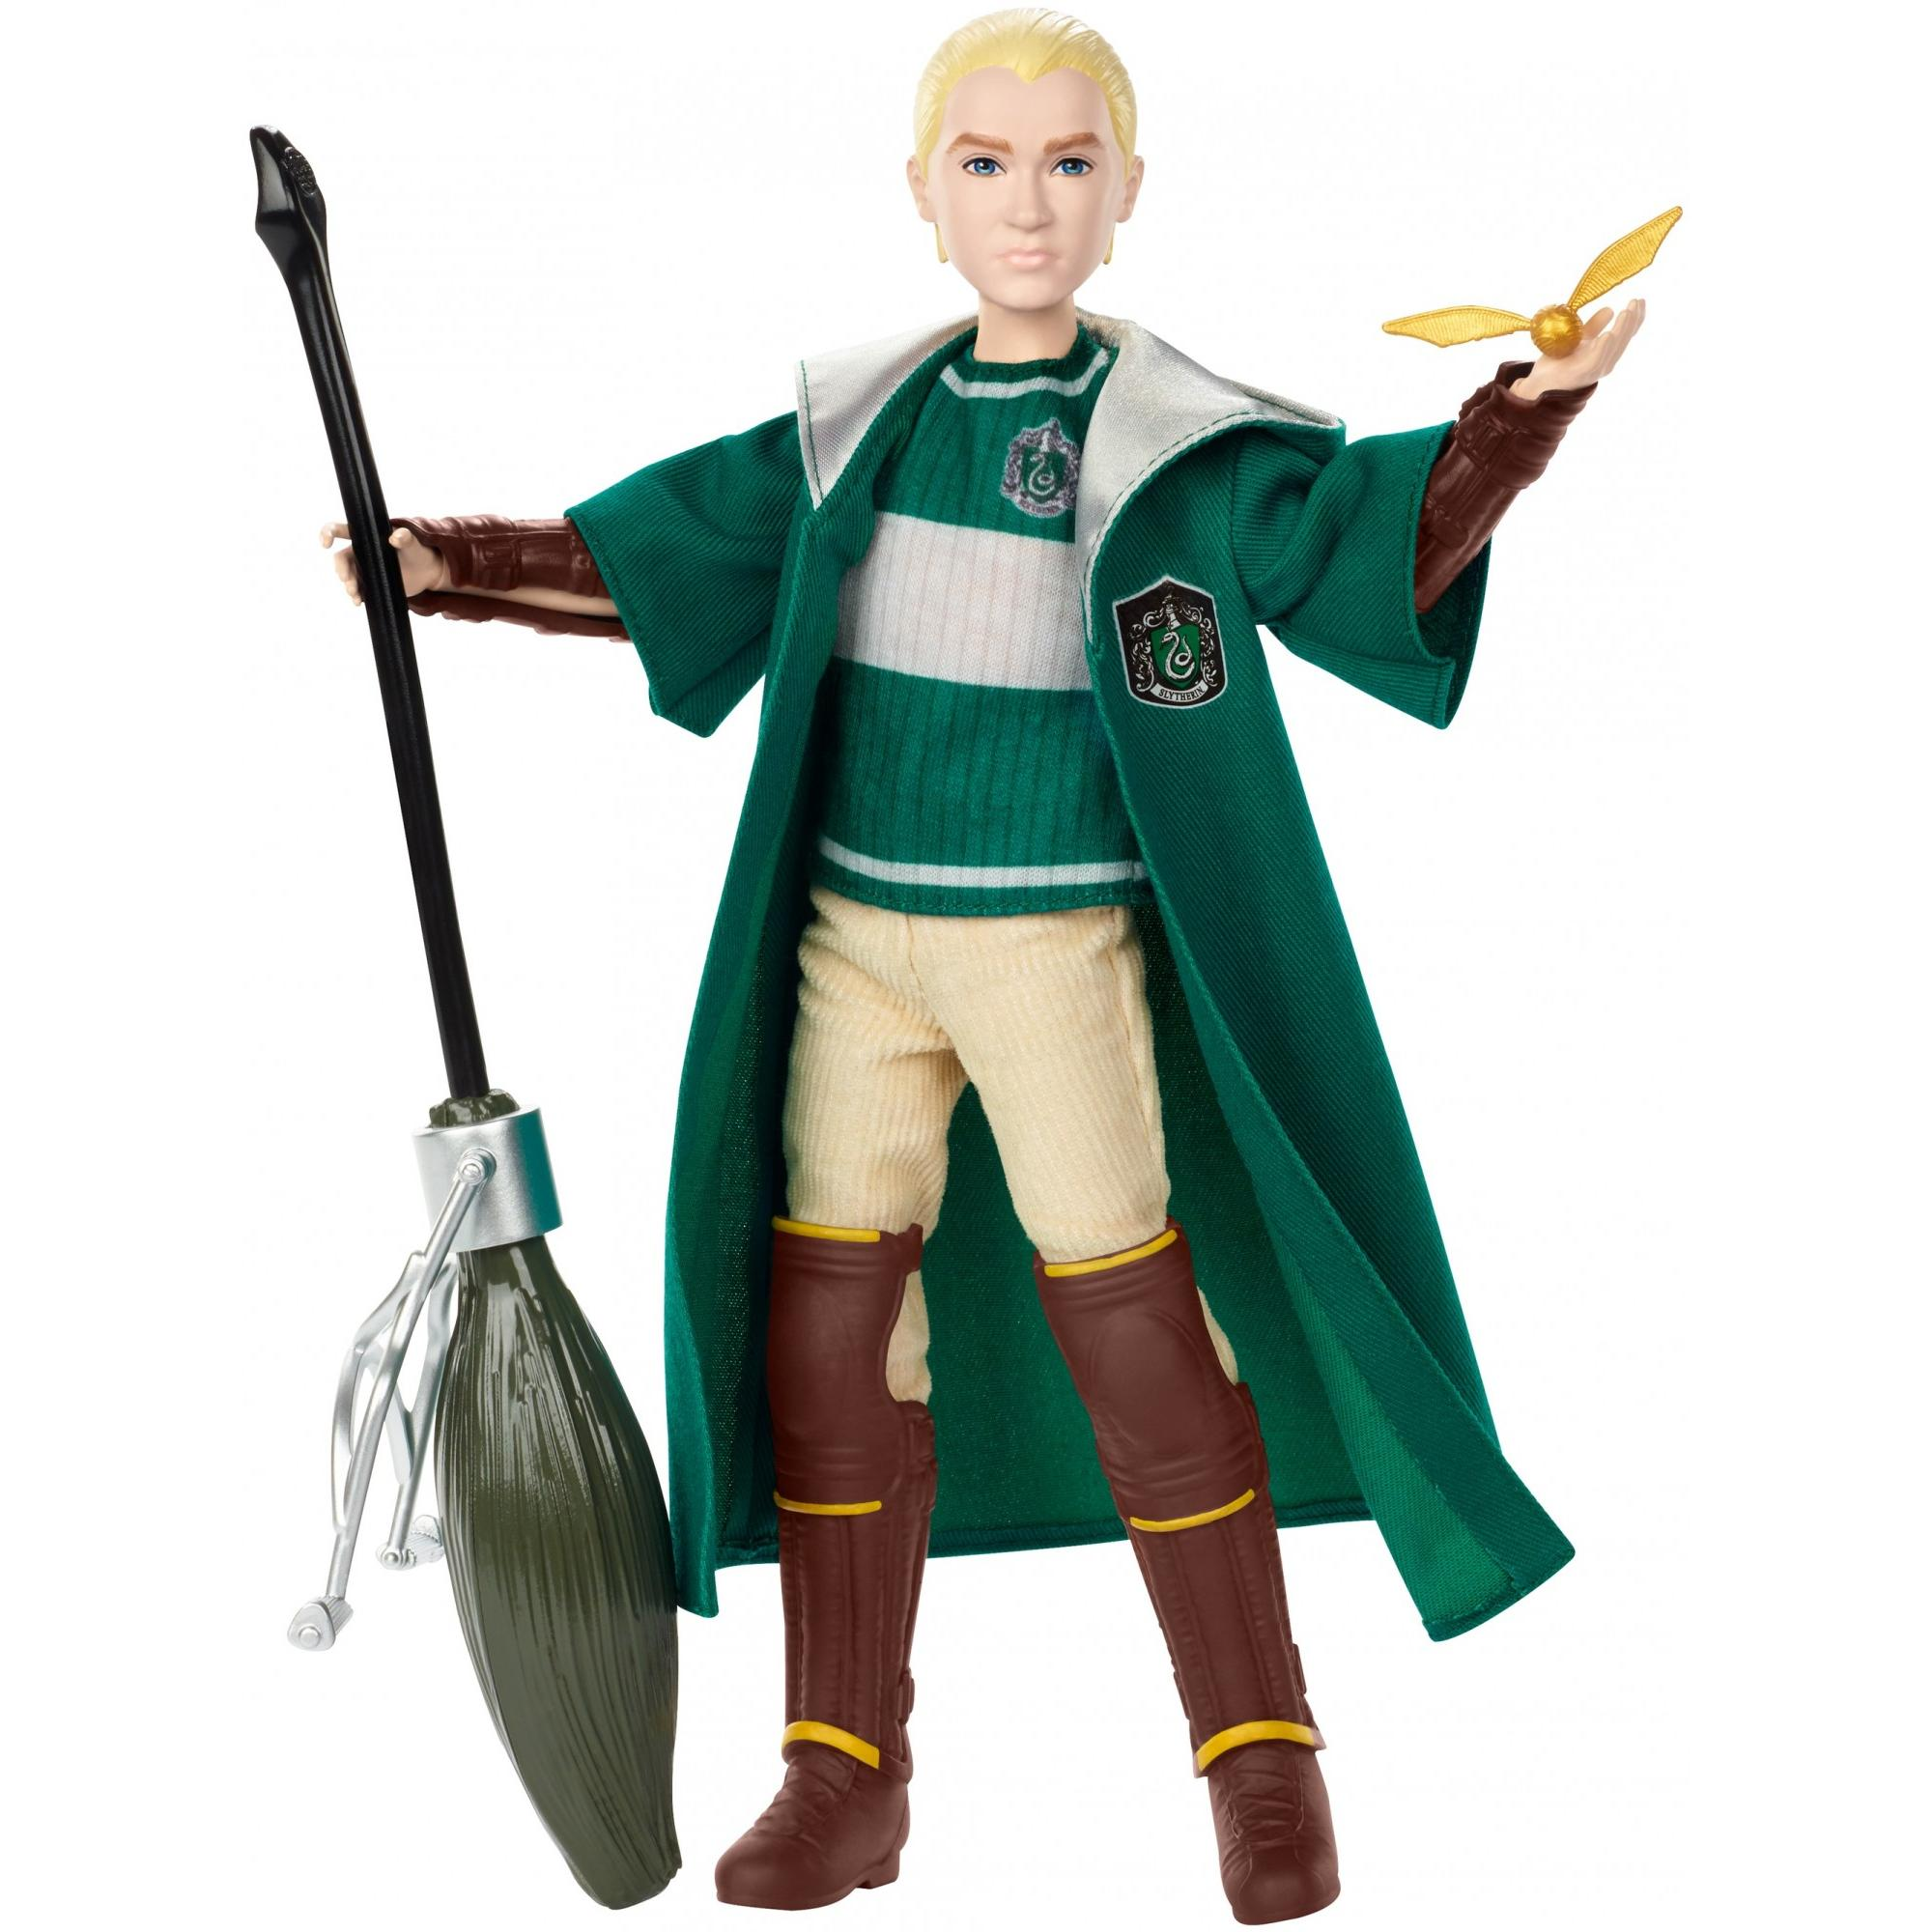 Harry Potter Quidditch Draco Malfoy Doll with Nimbus 2001 Broomstick